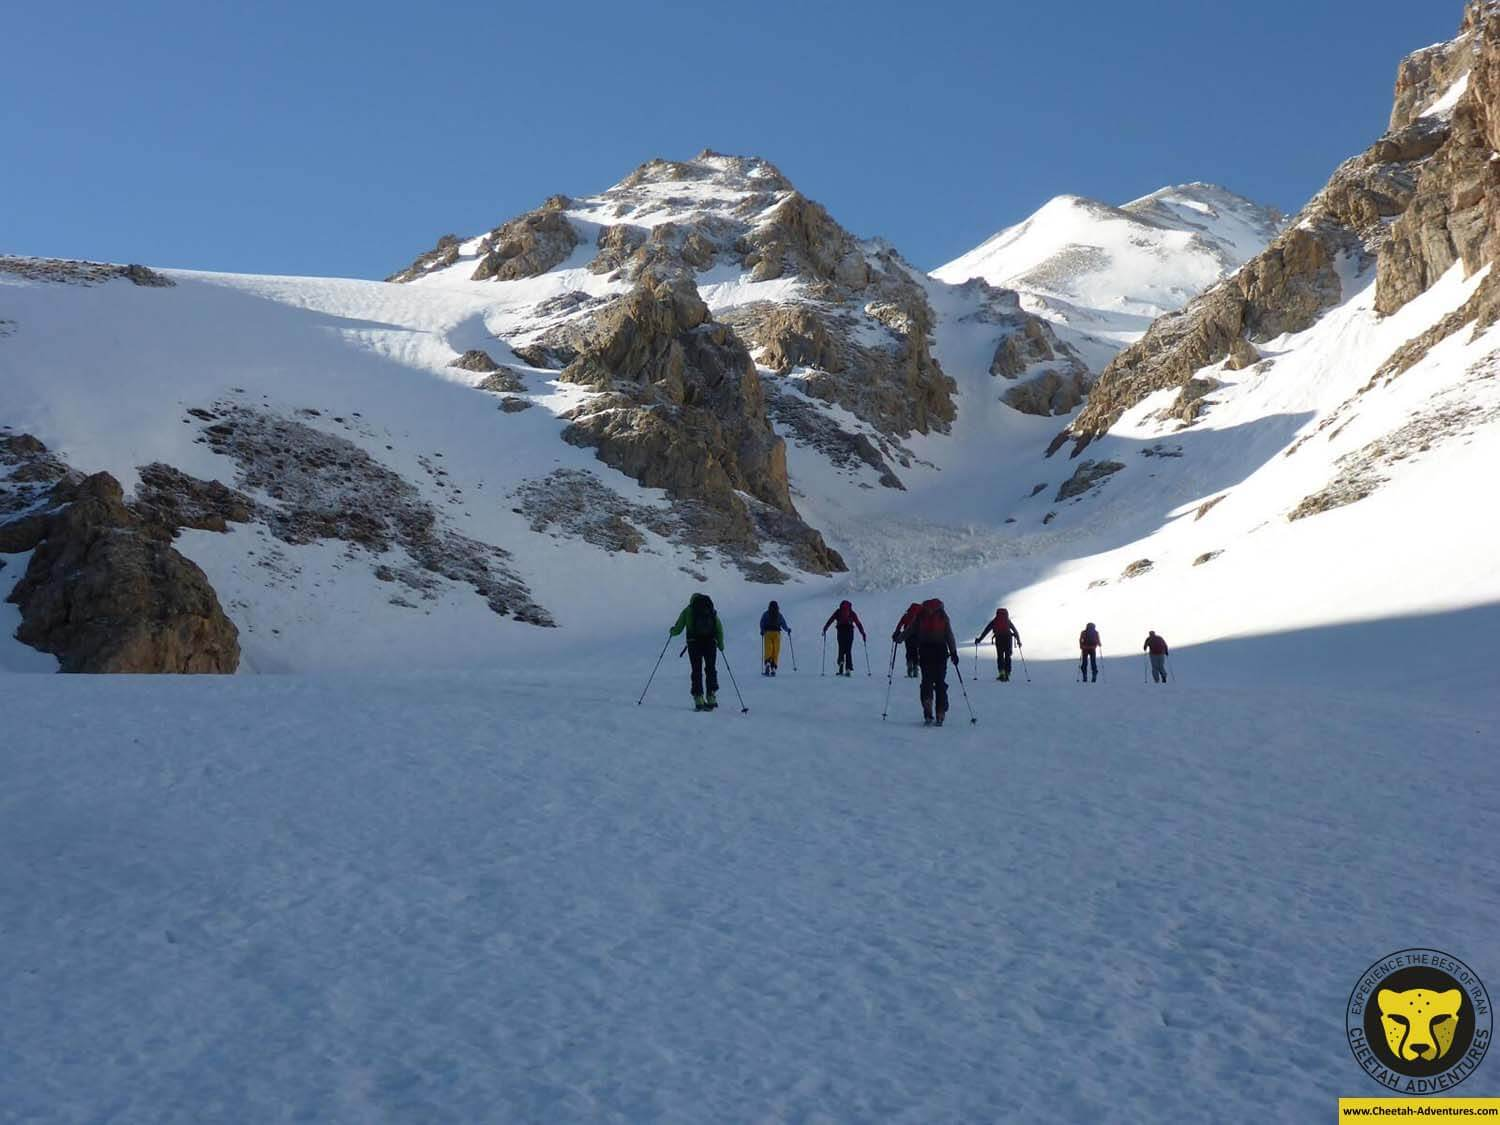 3 Ski touring on Doberar Range, to the summit of Angemar Peak (4050m)